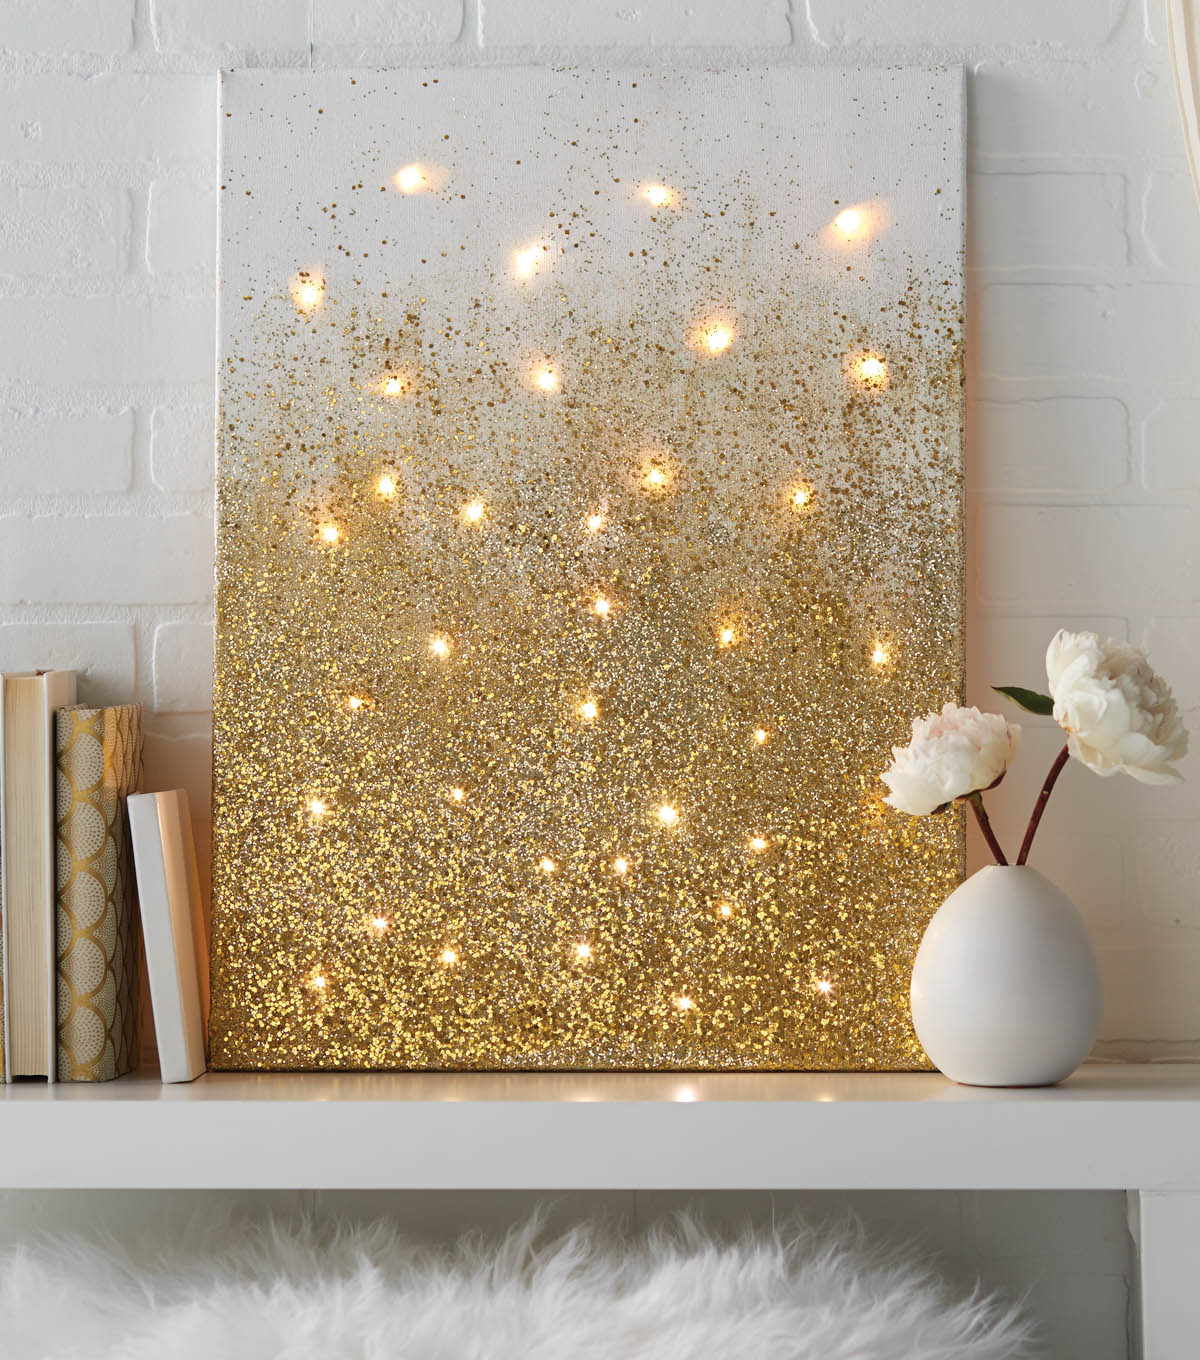 How To Apply Glitter To A Canvas Painting